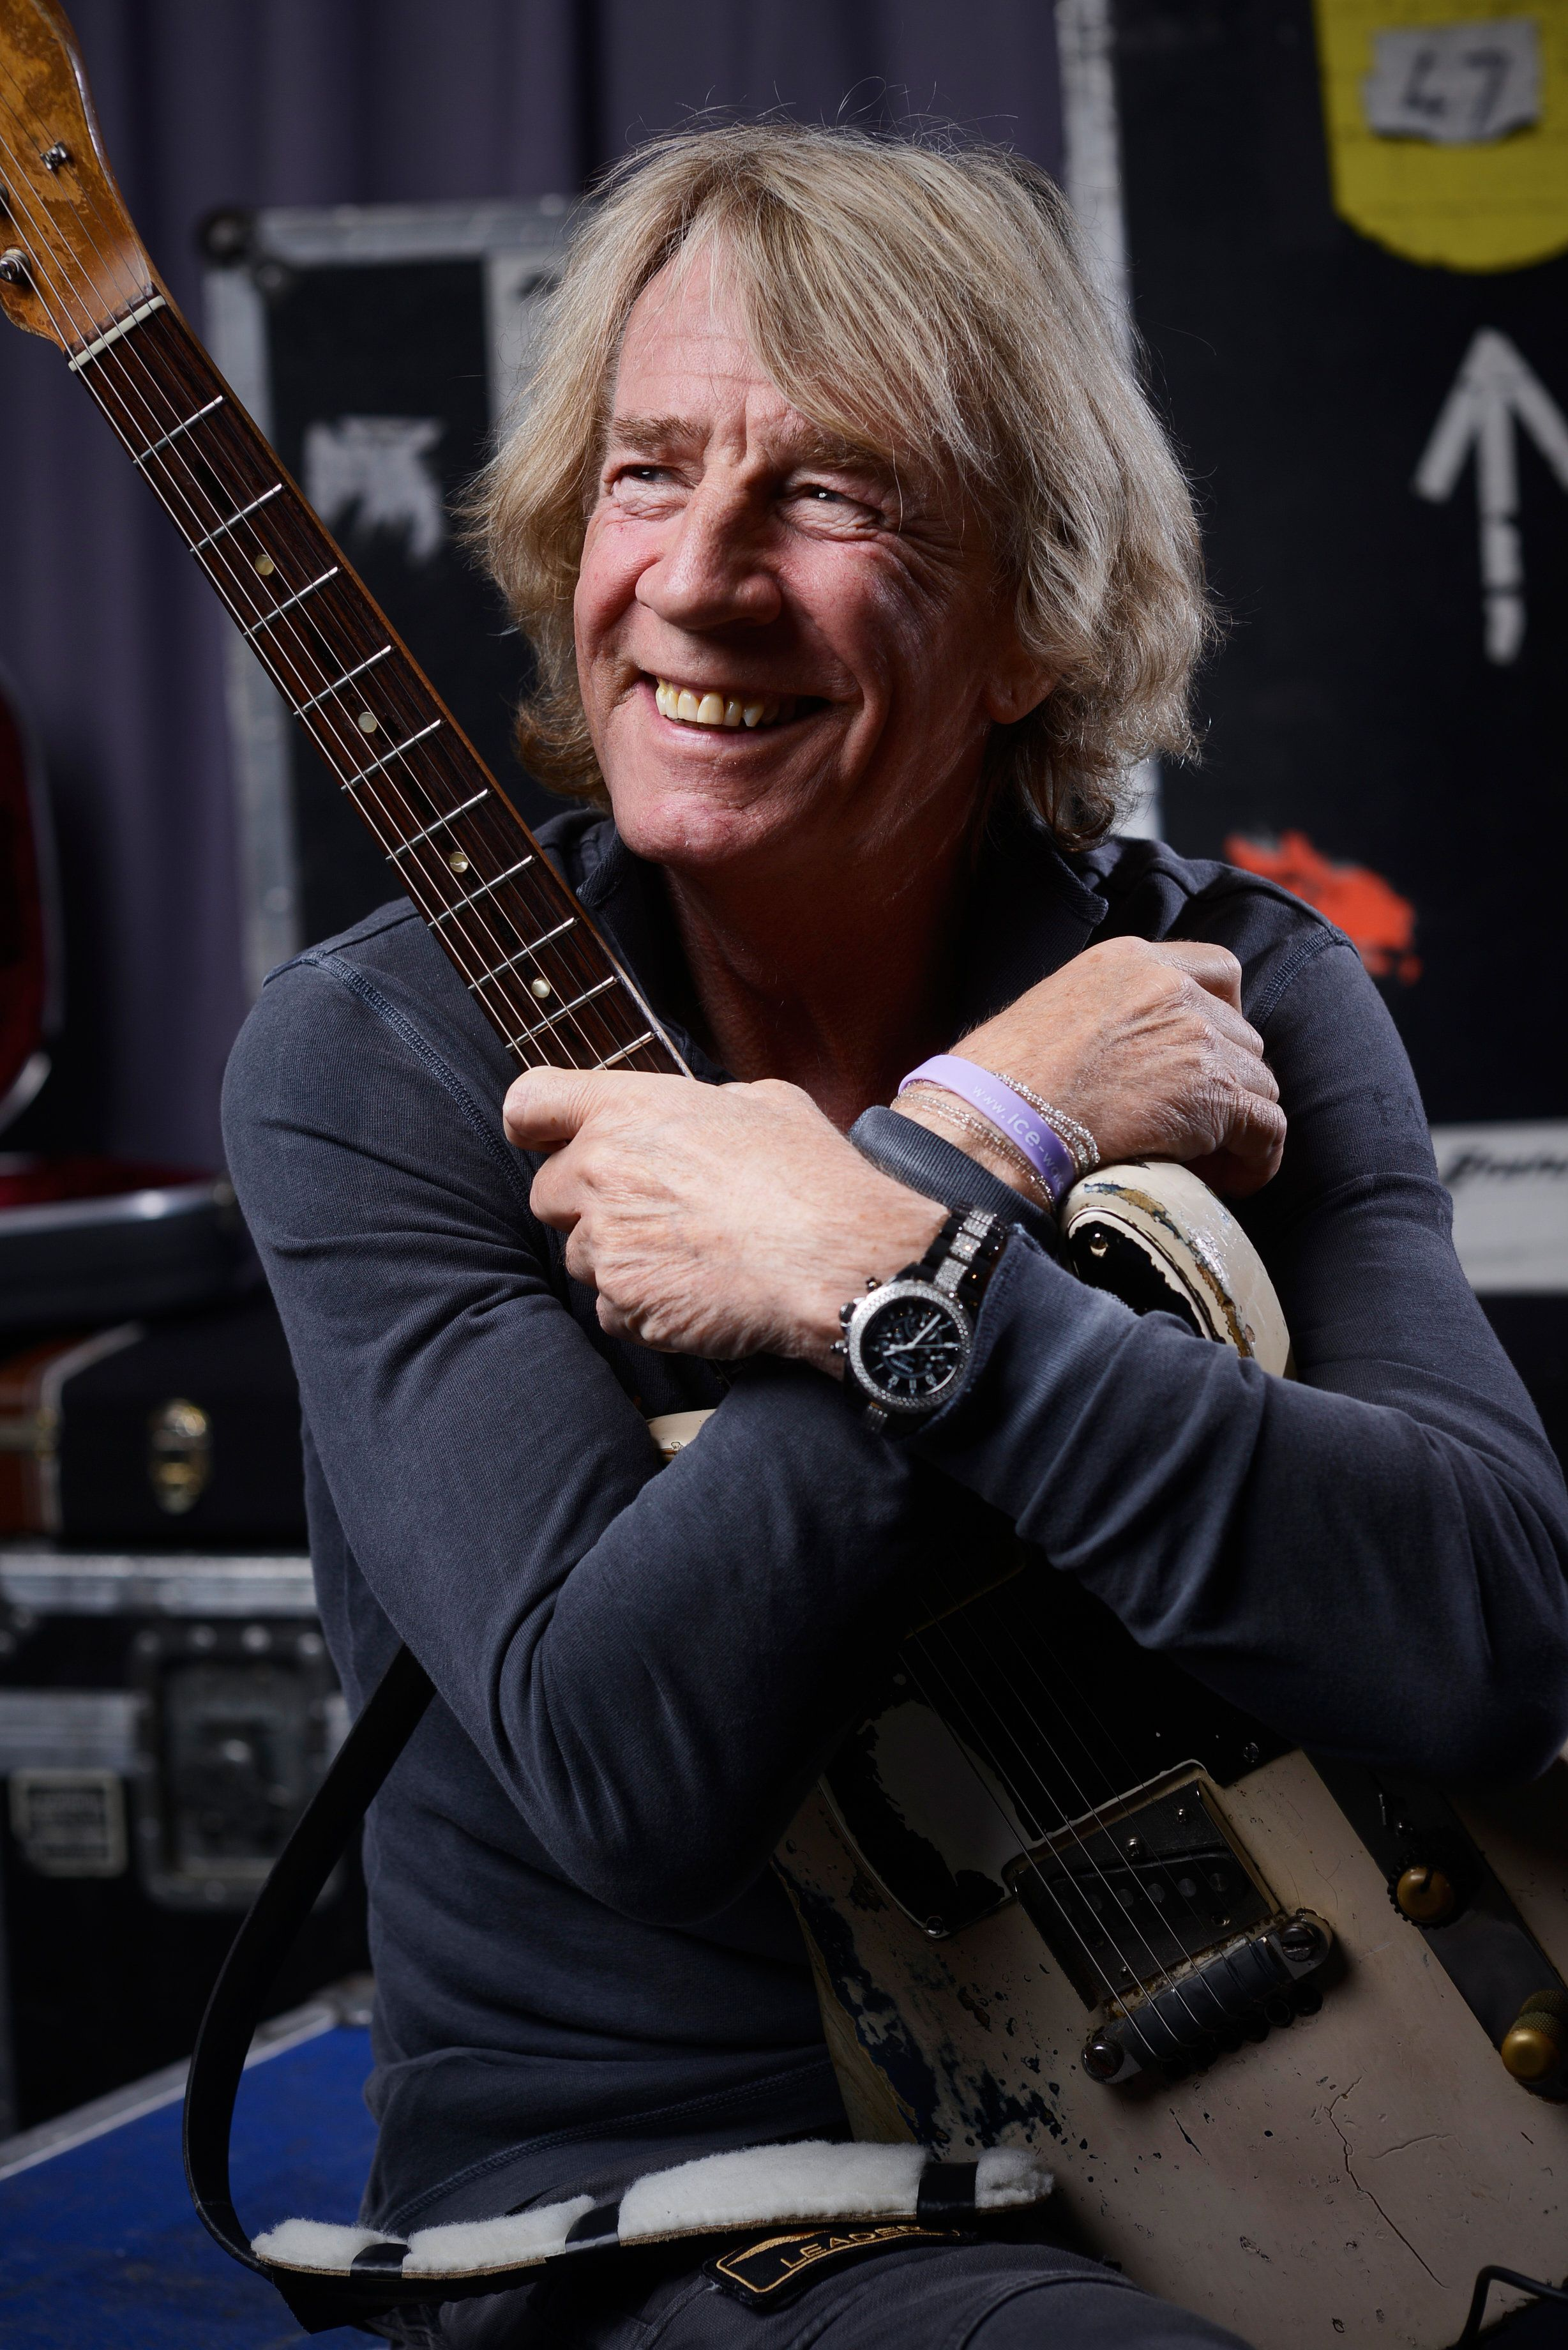 Rick had been performing with Status Quo for nearly half a